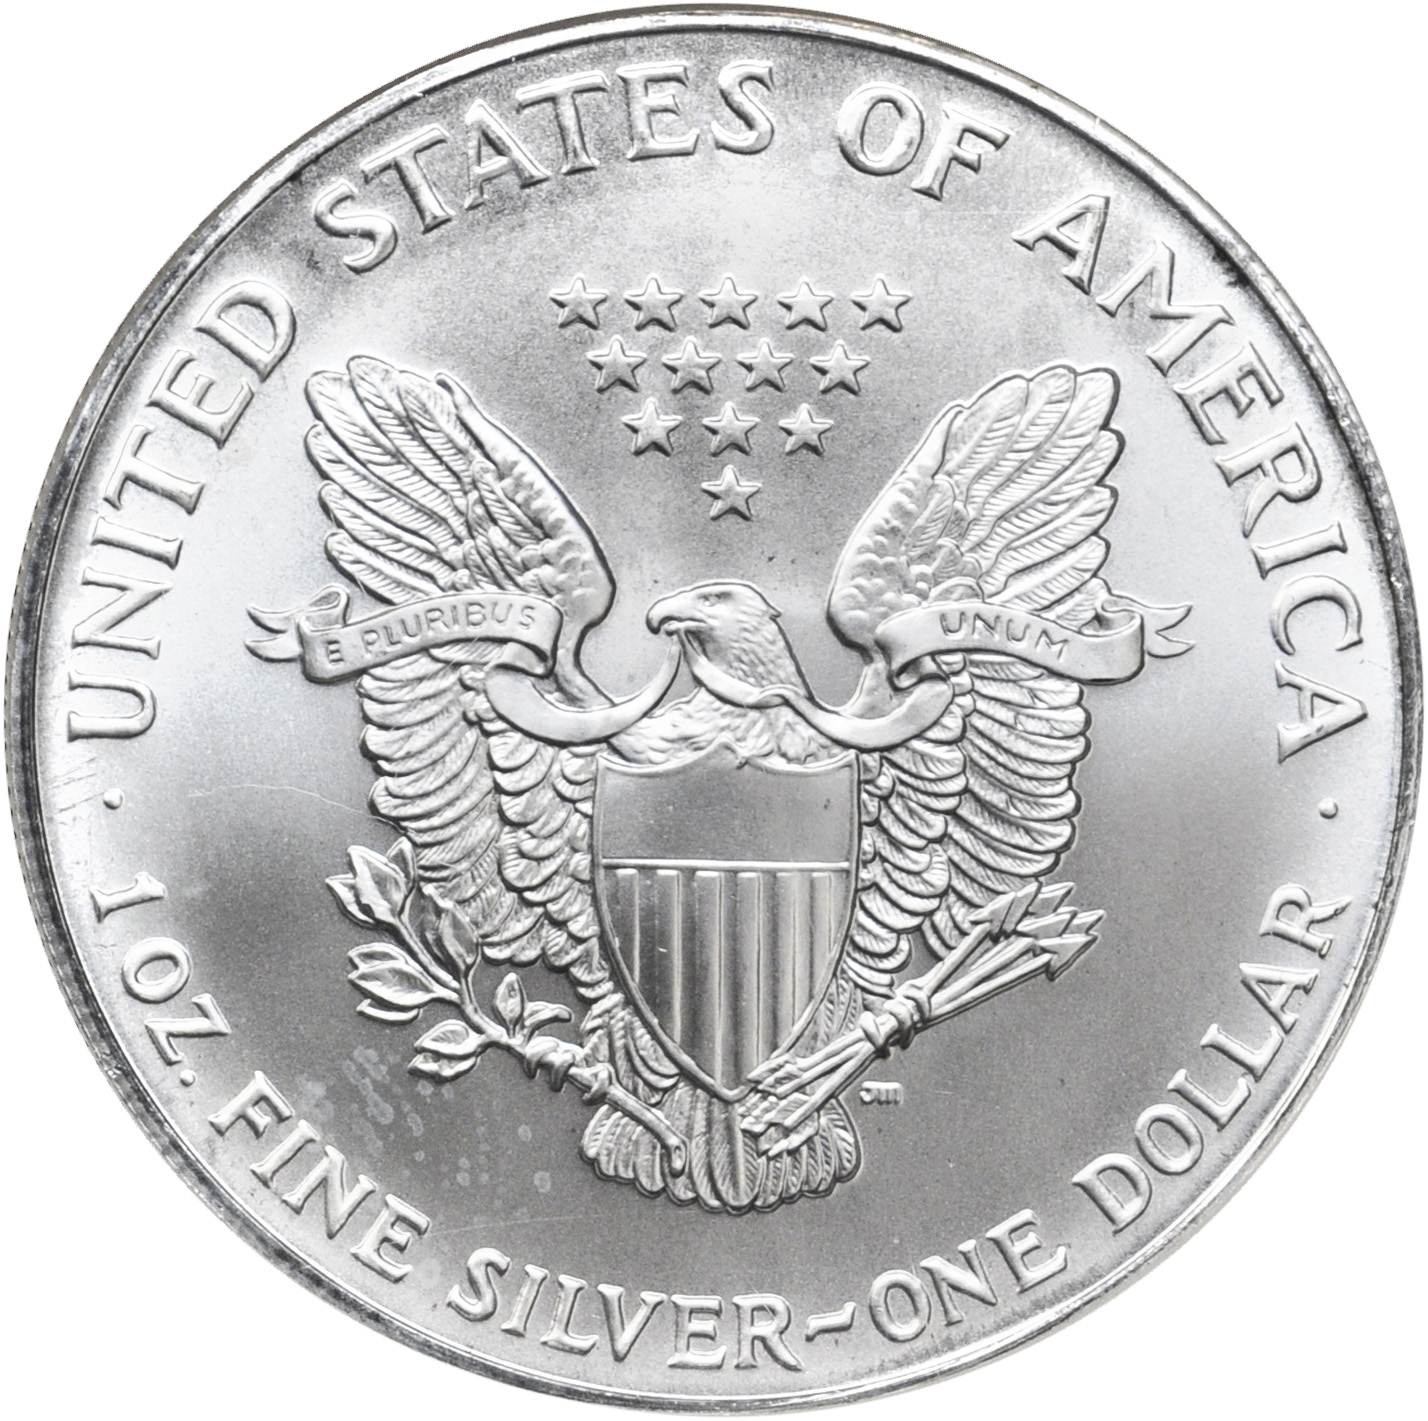 Value Of 1993 $1 Silver Coin